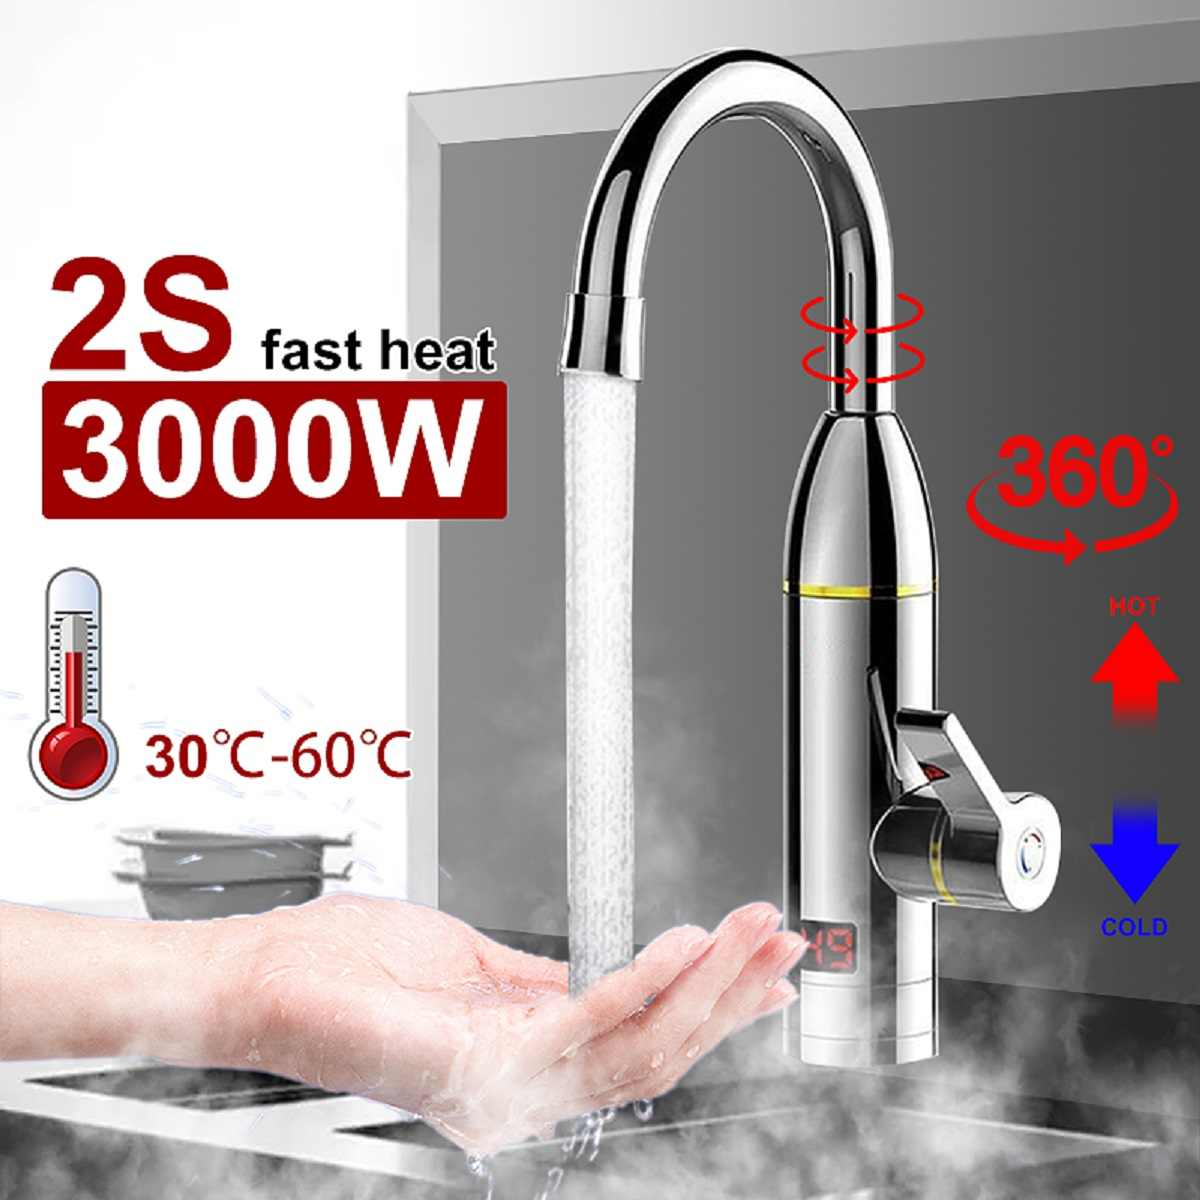 220V Electric Instant Hot Water Heater Faucet Tap Bathroom Kitchen 3000W Display